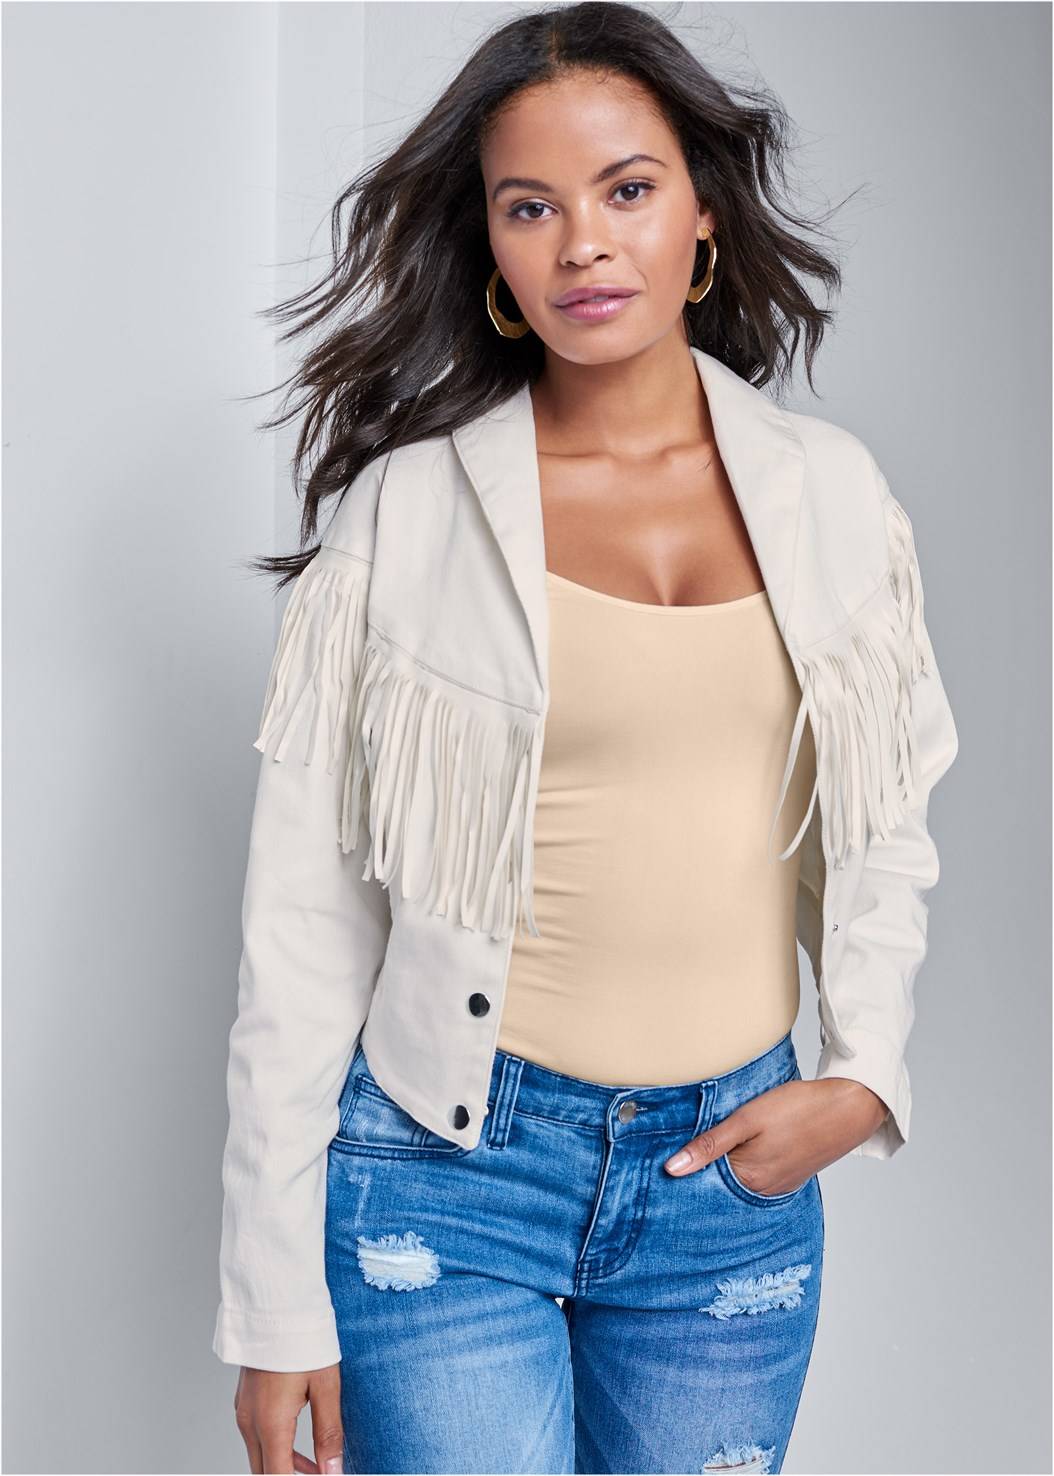 Fringe Detail Denim Jacket,Triangle Hem Jeans,Embellished Wedges,Color Block Mules,Hammered Metal Earrings